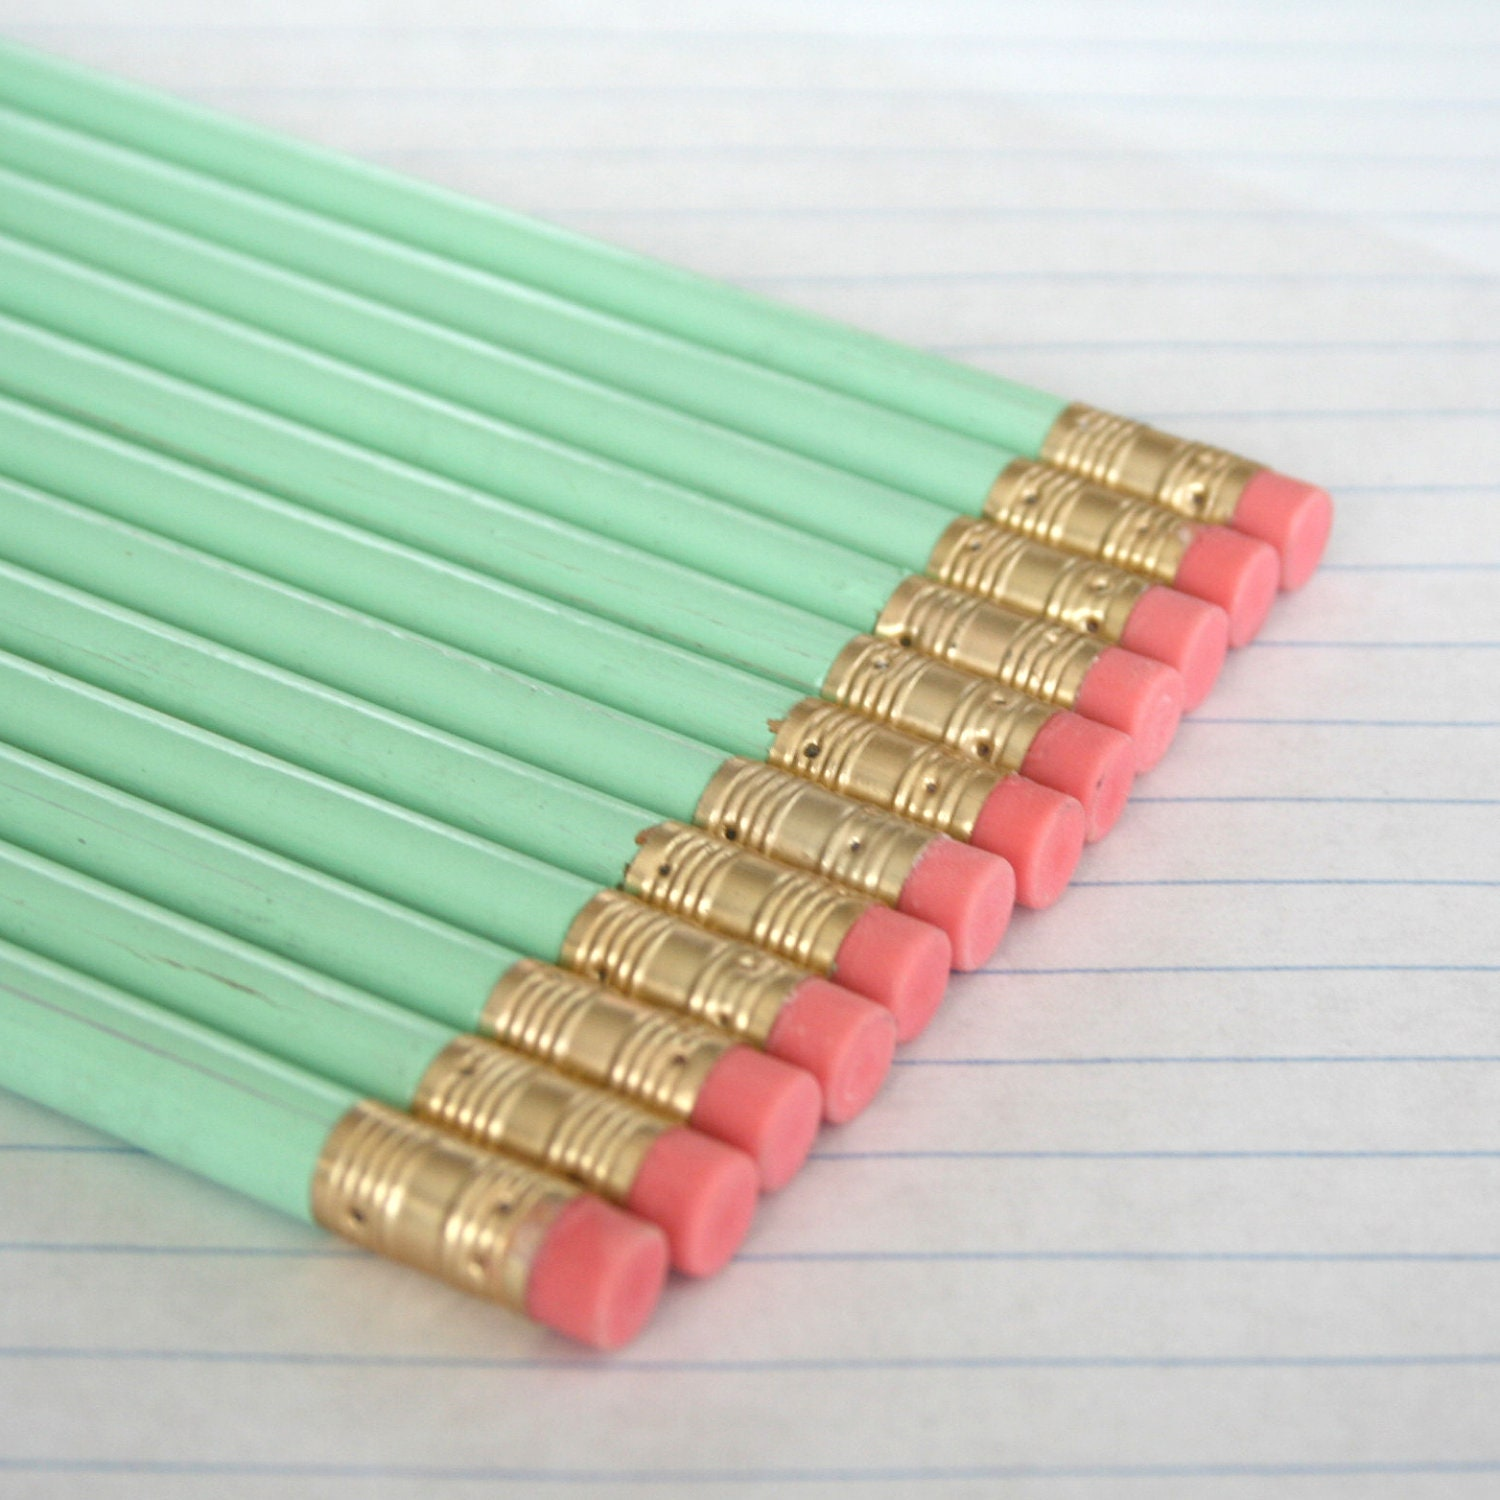 40 imperfect pastel mint green pencils. back to school supplies - thecarboncrusader